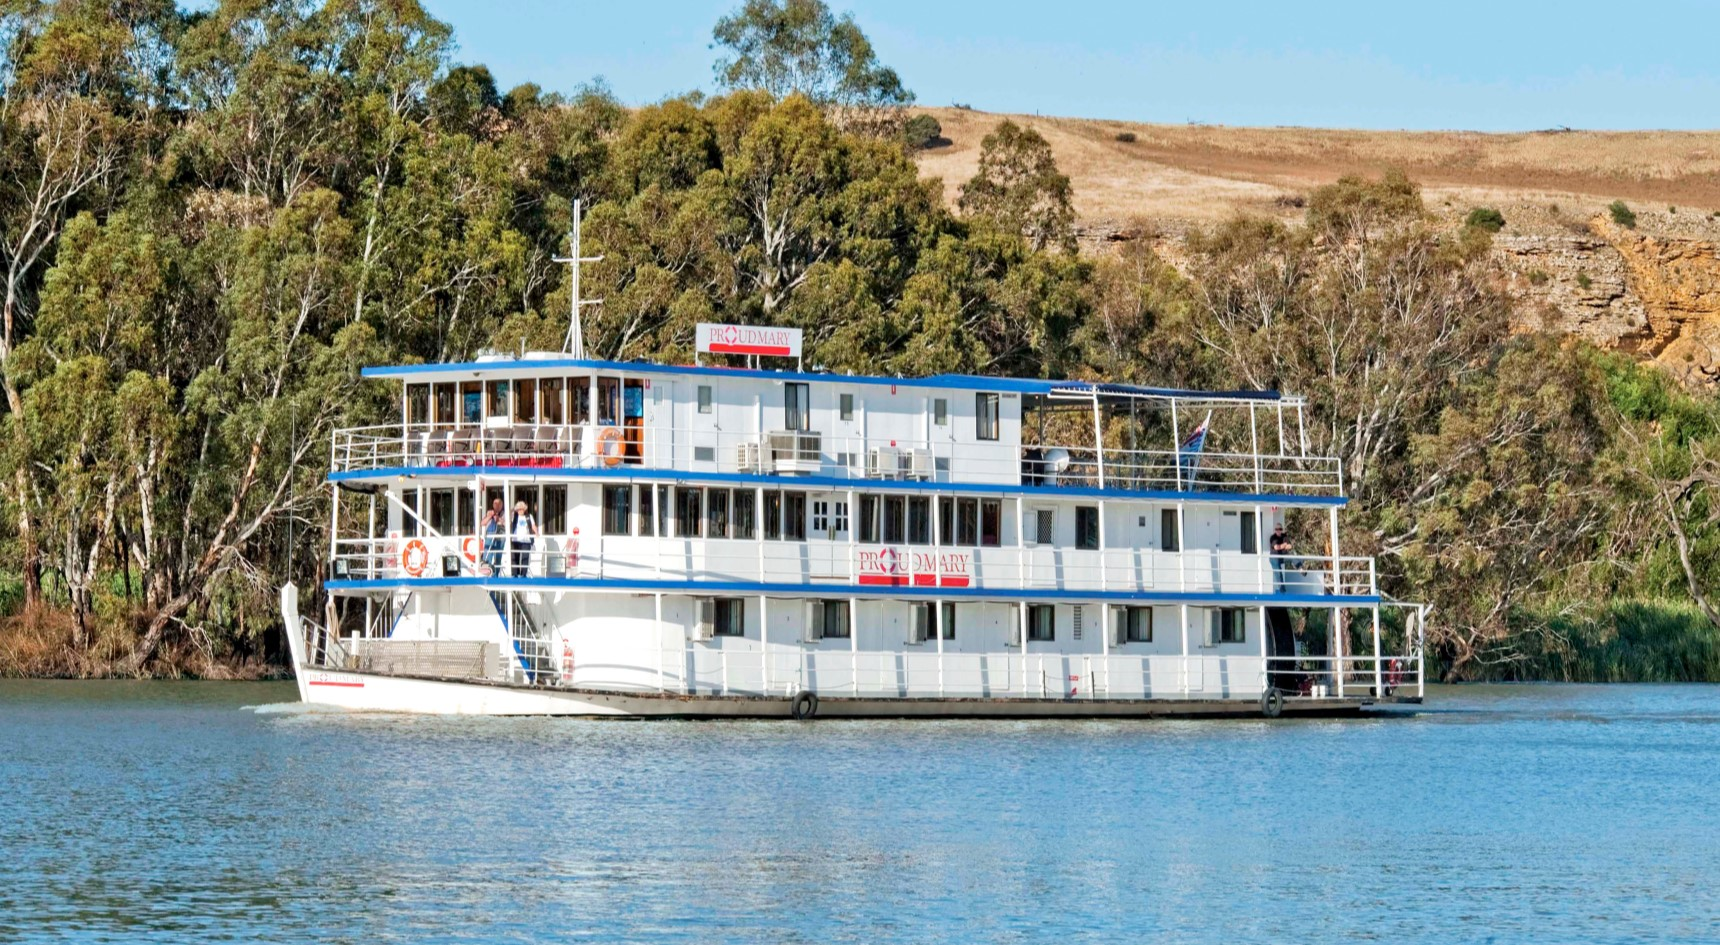 Take a Proud Mary cruise along the Murray River. Image: Eli Francis/SATC